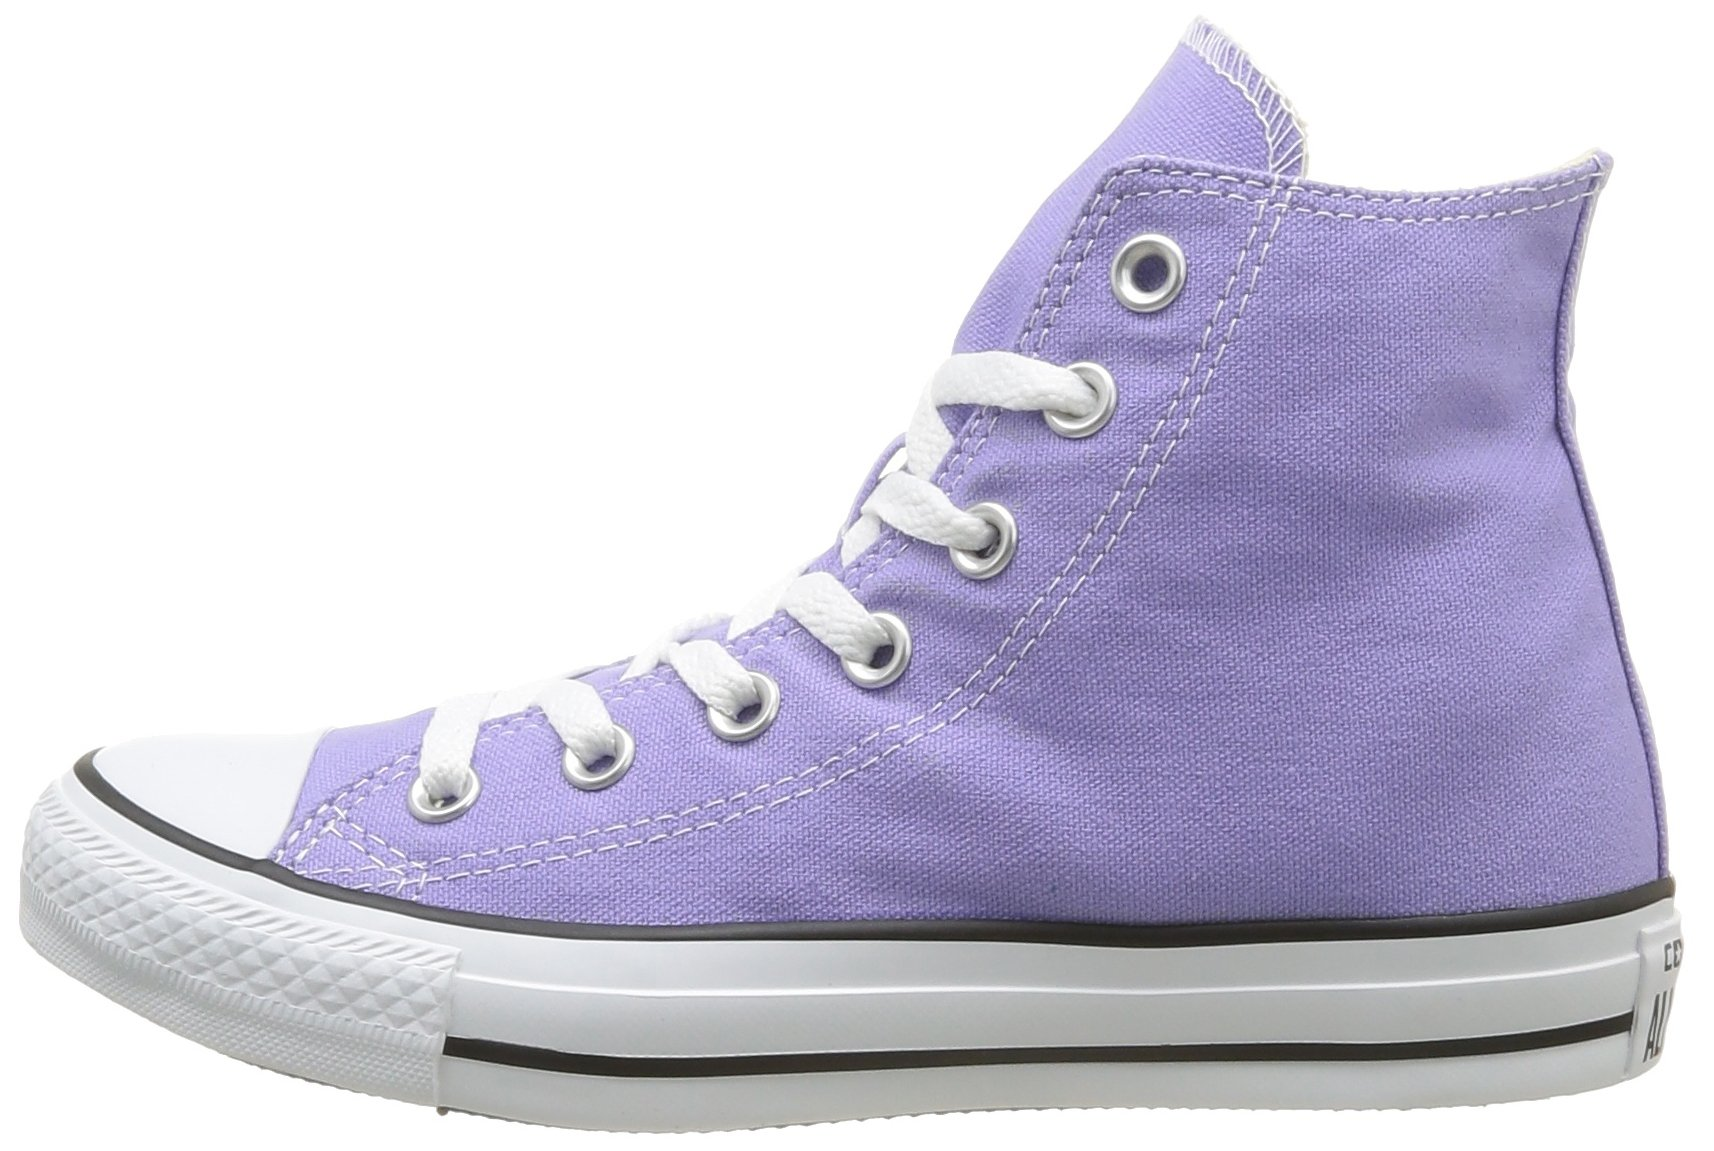 Converse Chuck Taylor All Star High Season Sneaker Kinder 11.0 US - 28.0 EU FFBhW9